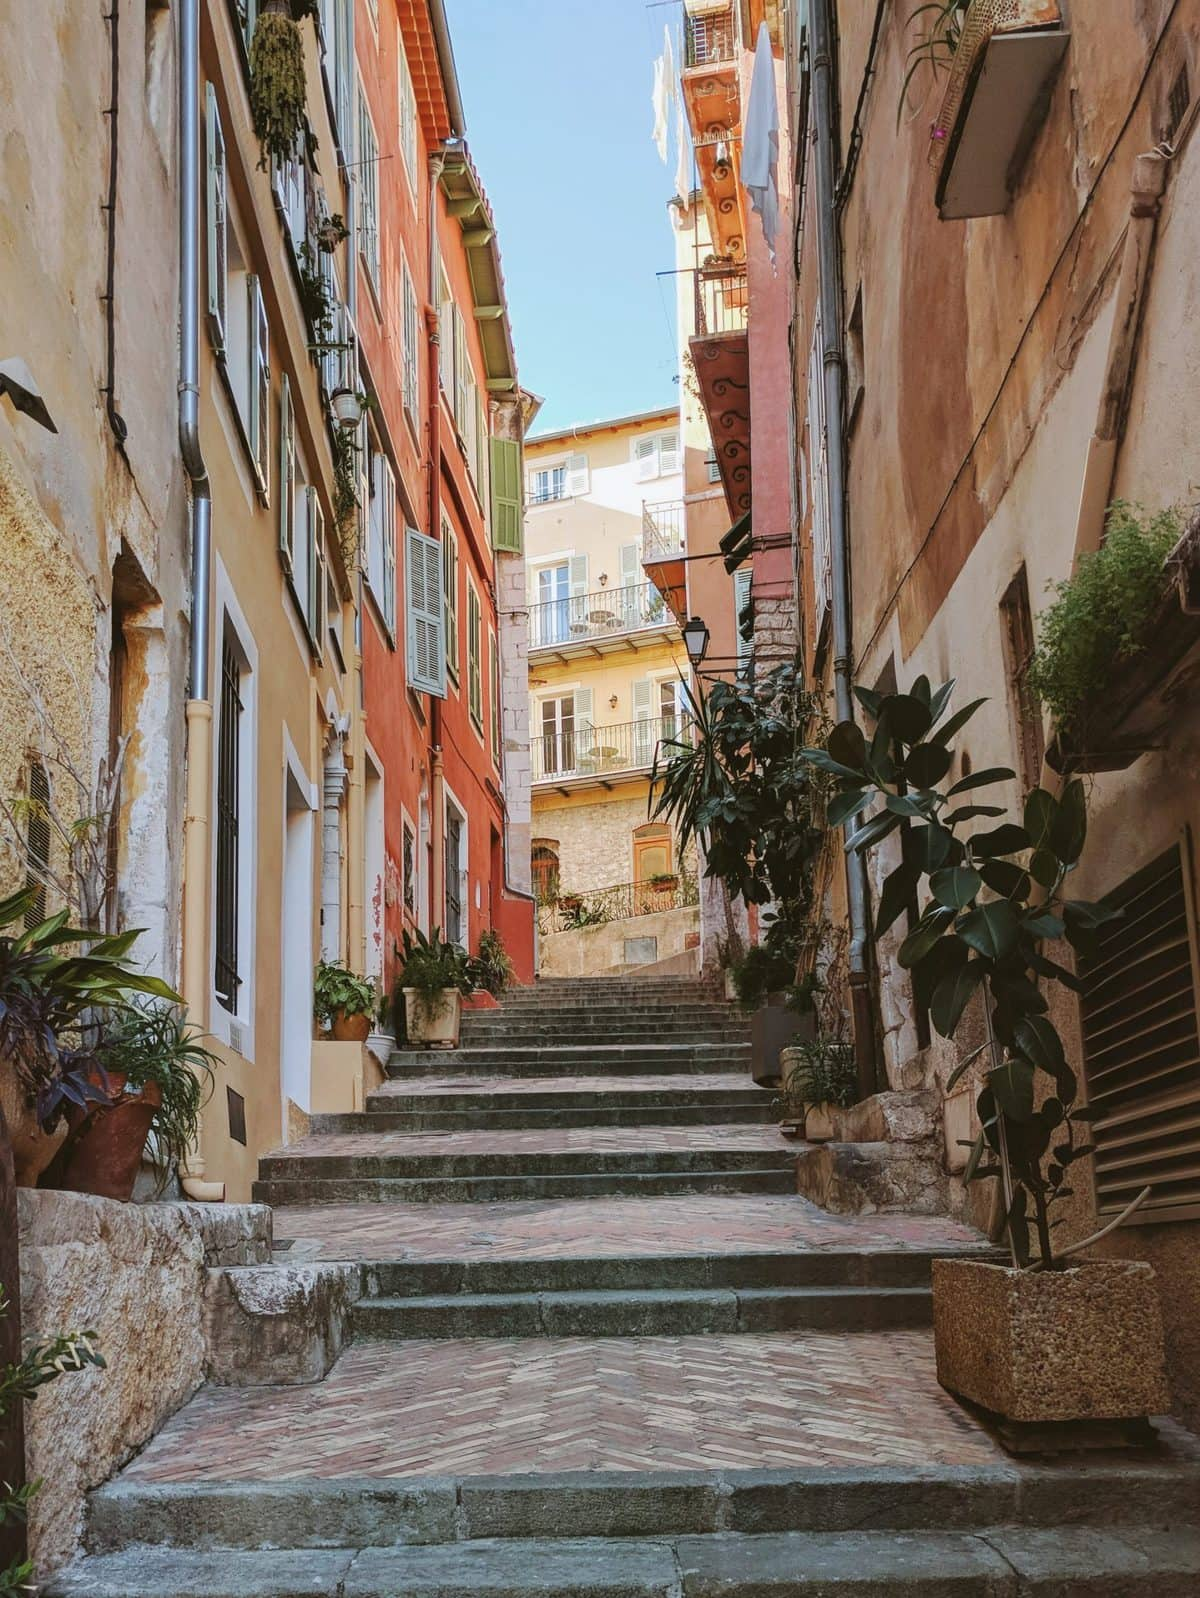 Colorful alleyway in Villefranche-sur-Mer, France